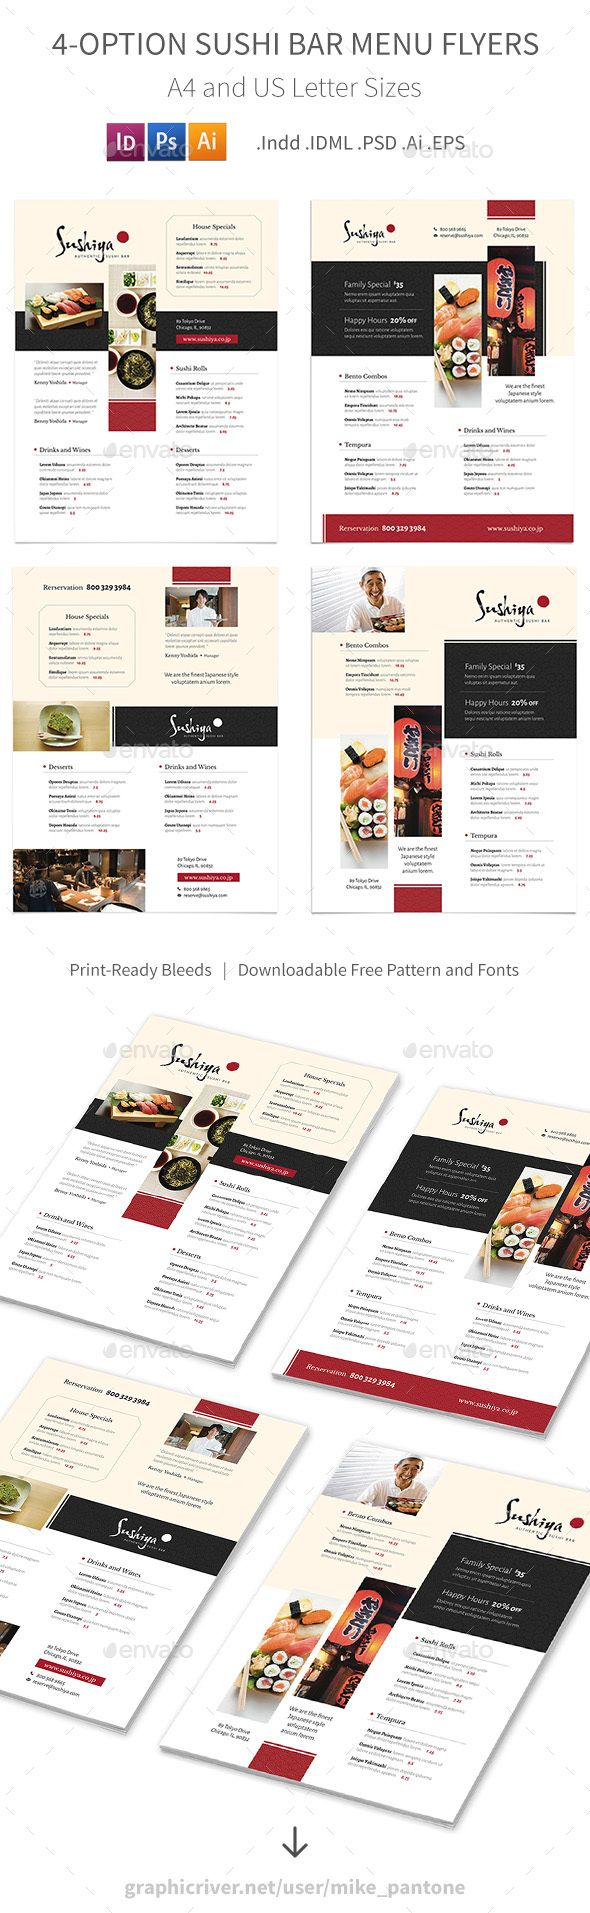 Sushi Bar Menu Flyers – 4 Options - Food Menus Print Templates Download here : https://graphicriver.net/item/sushi-bar-menu-flyers-4-options/19273342?s_rank=76&ref=Al-fatih